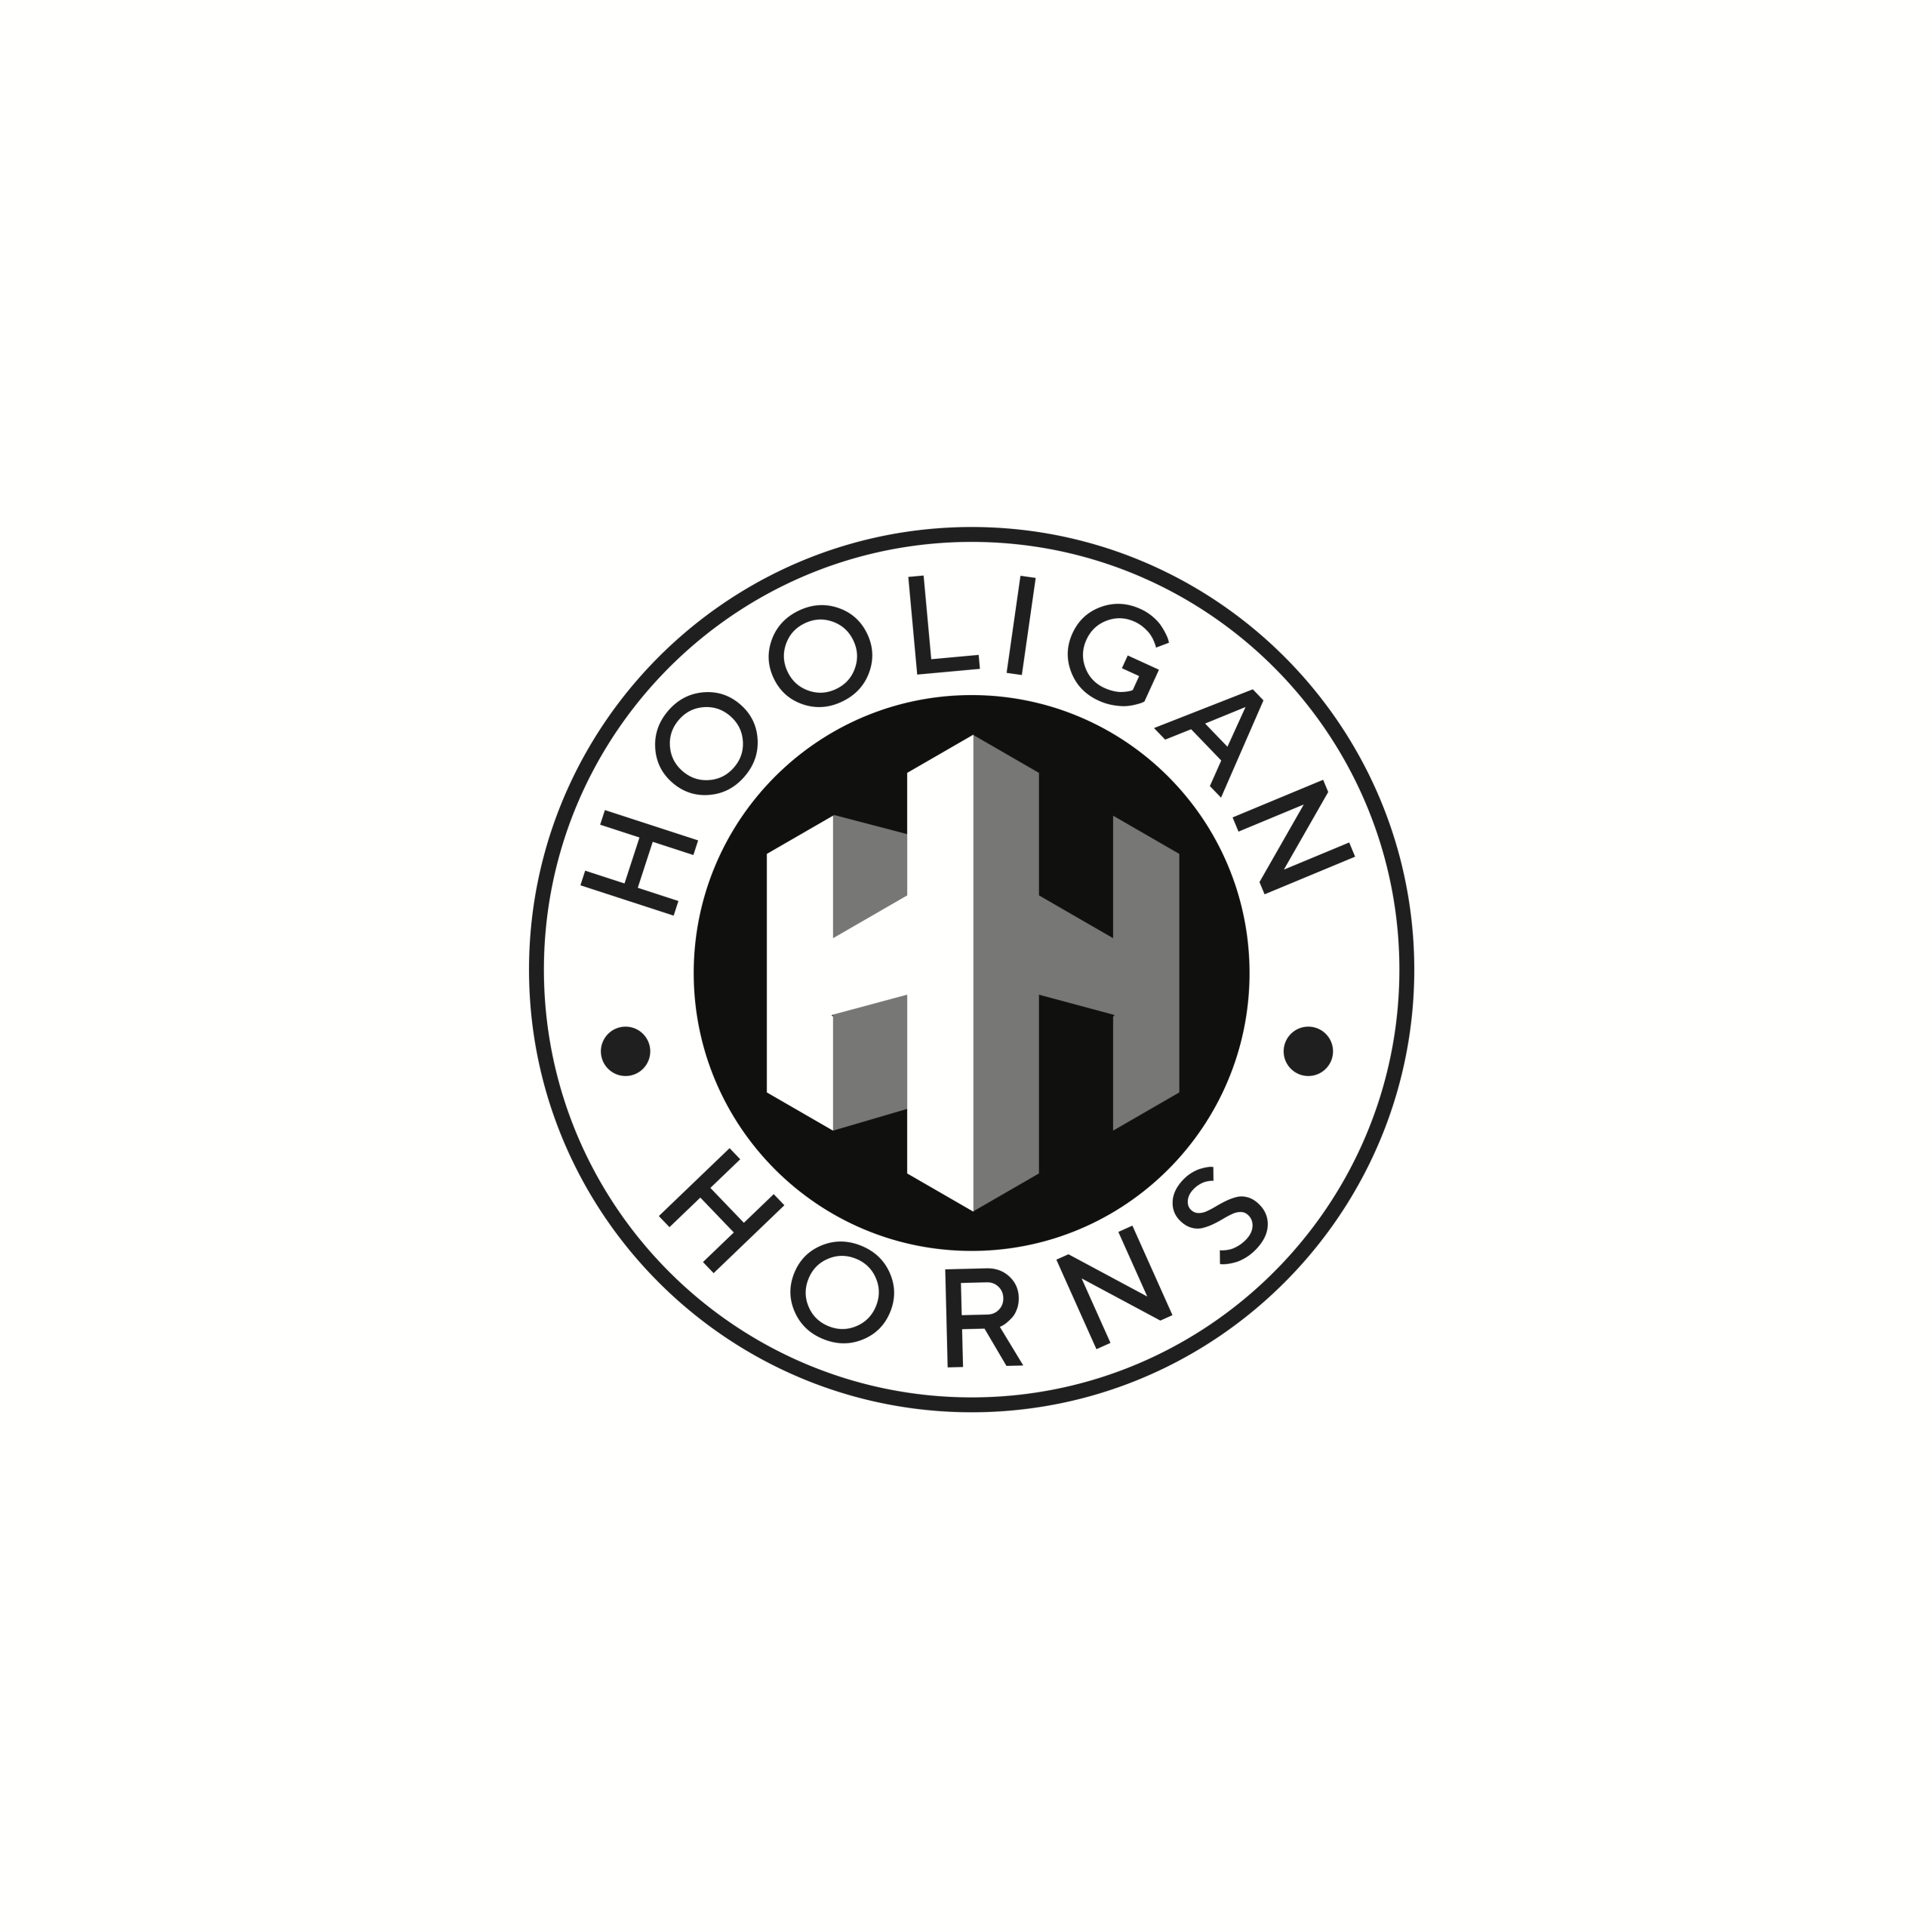 Hooligan Horns